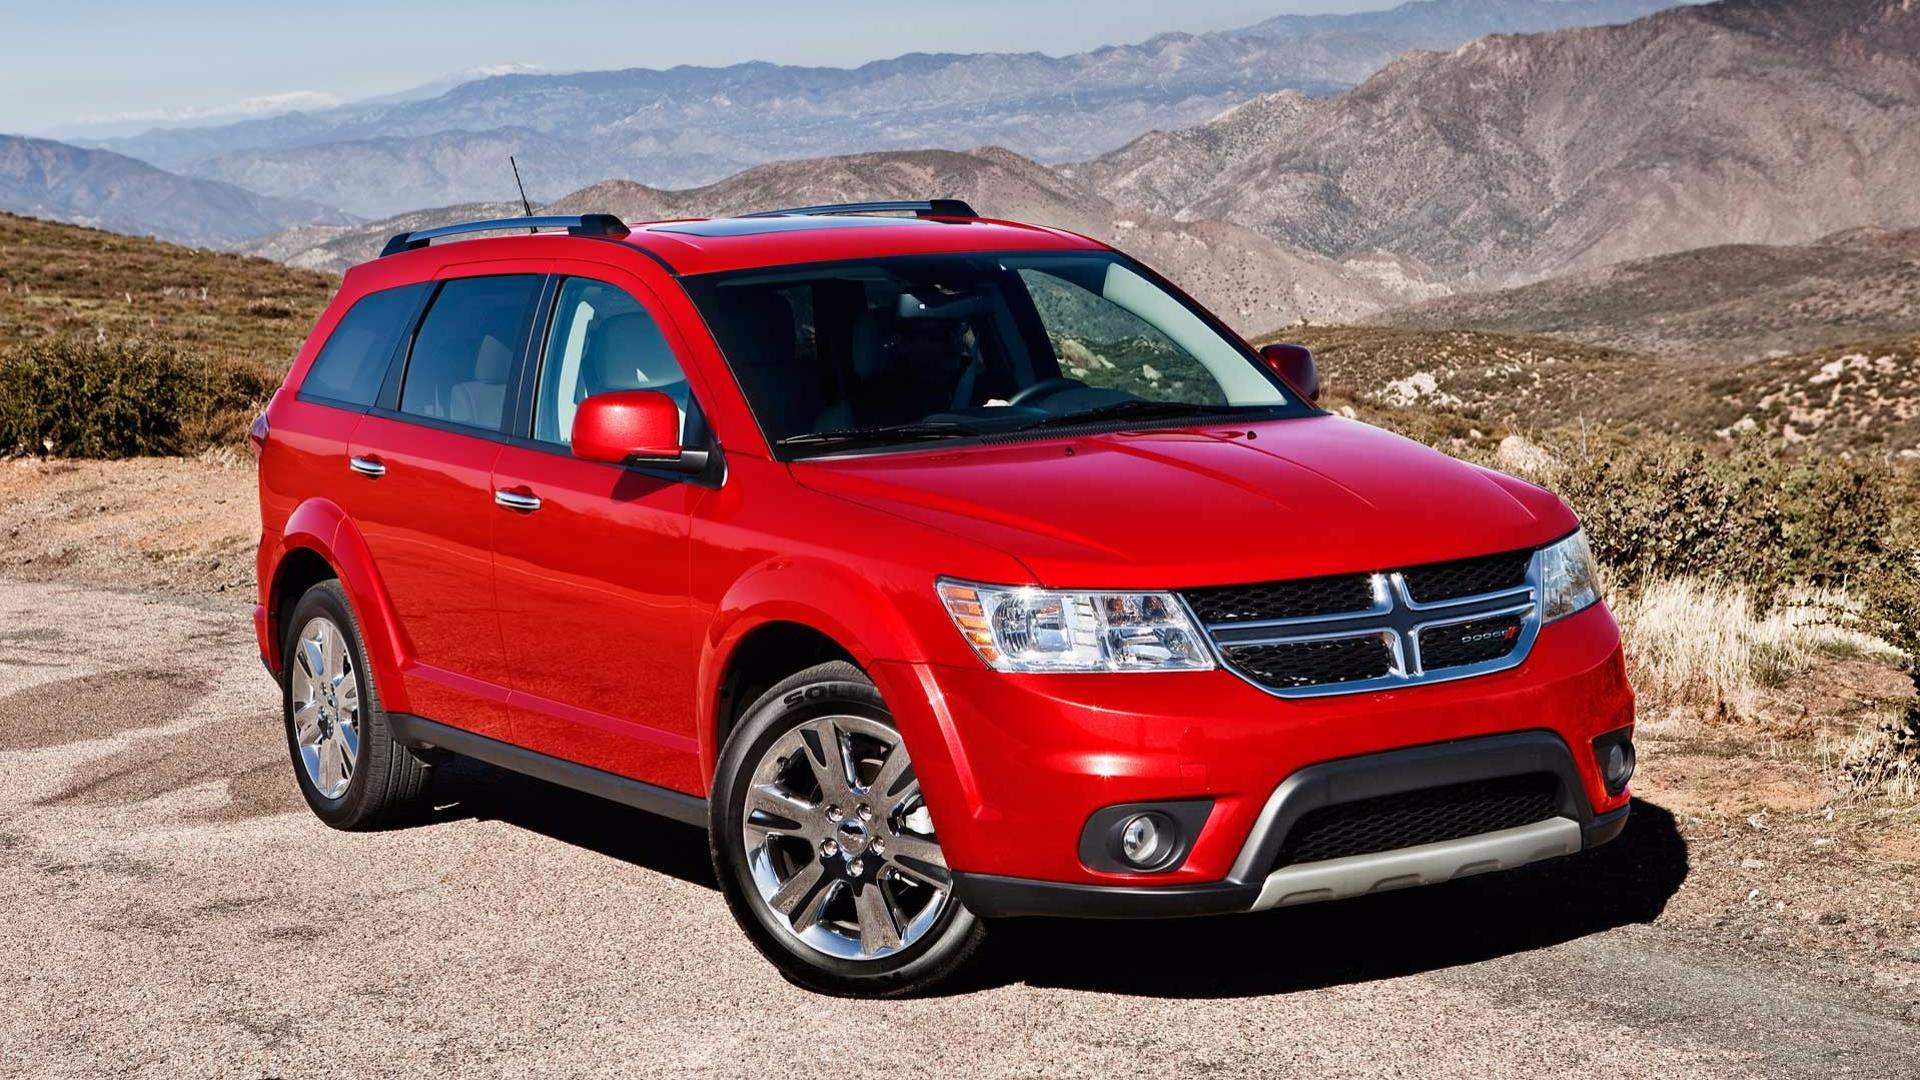 fca recalls 363k dodge journey crossovers for airbag issues rh motor1 com 2009 Dodge Journey Recall List dodge journey wiring harness recall